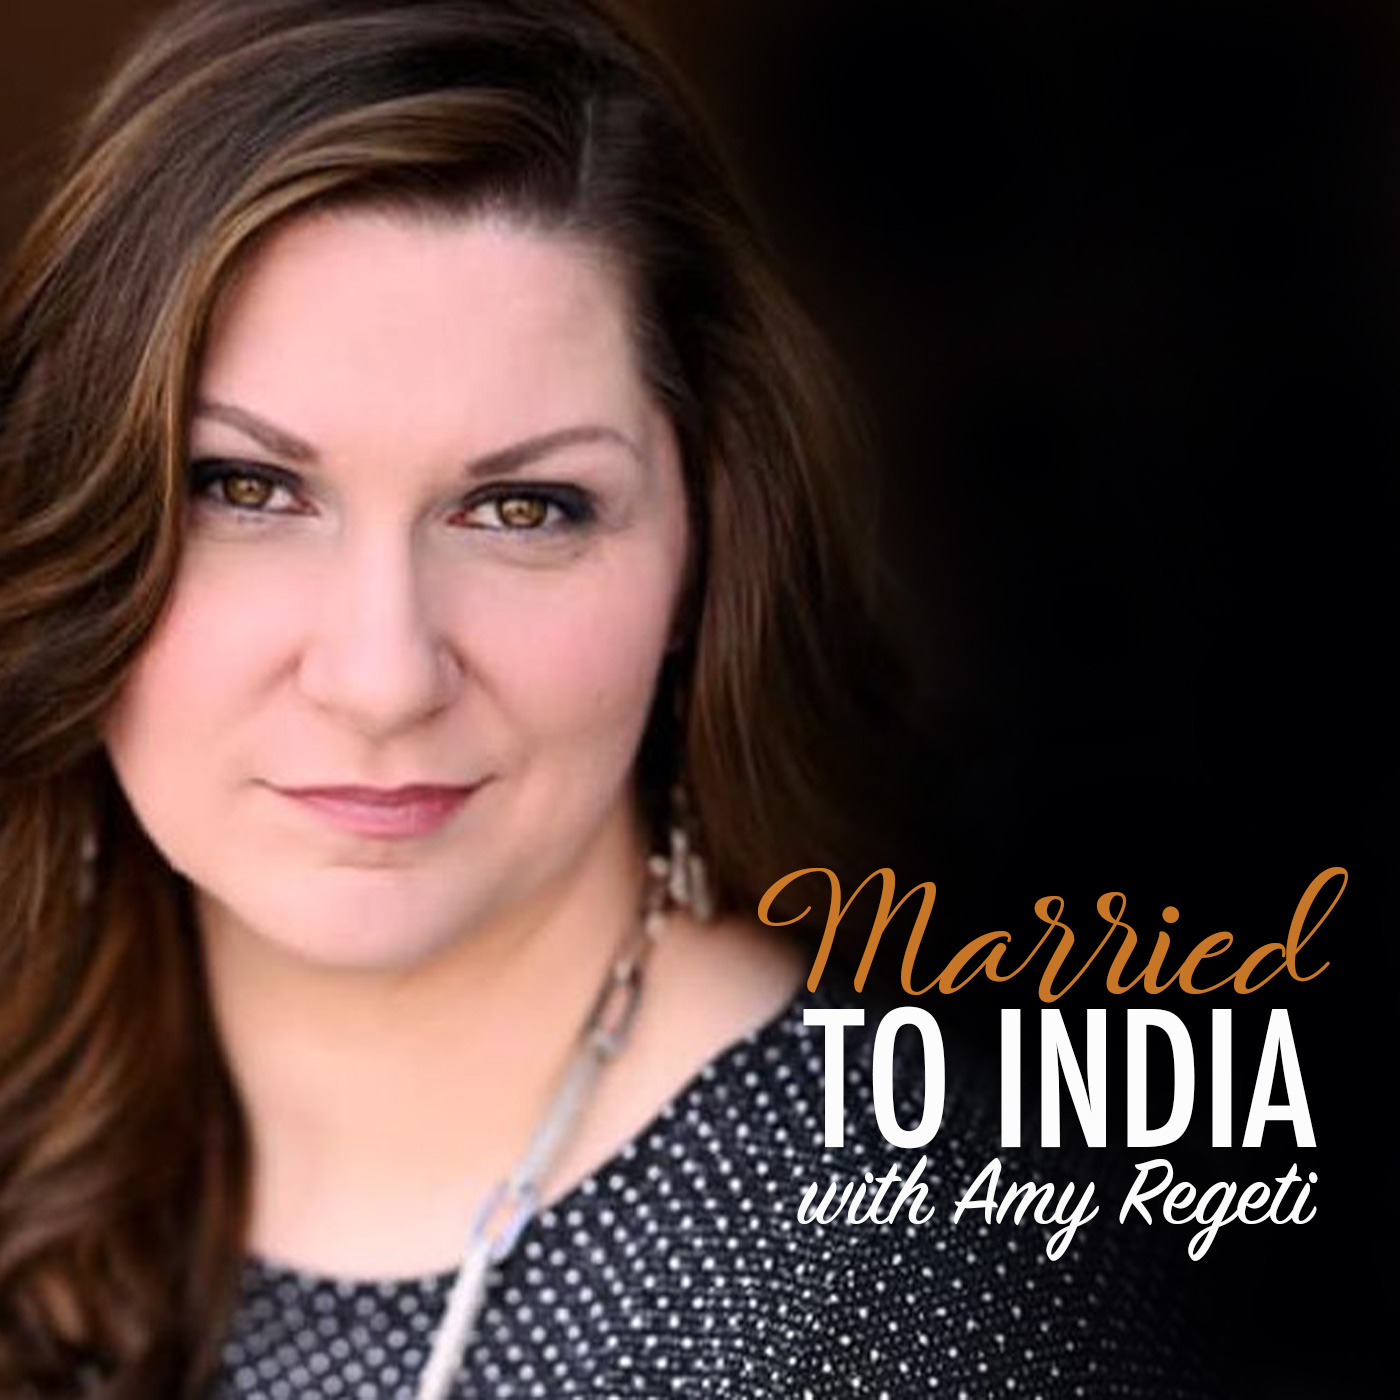 Married to India